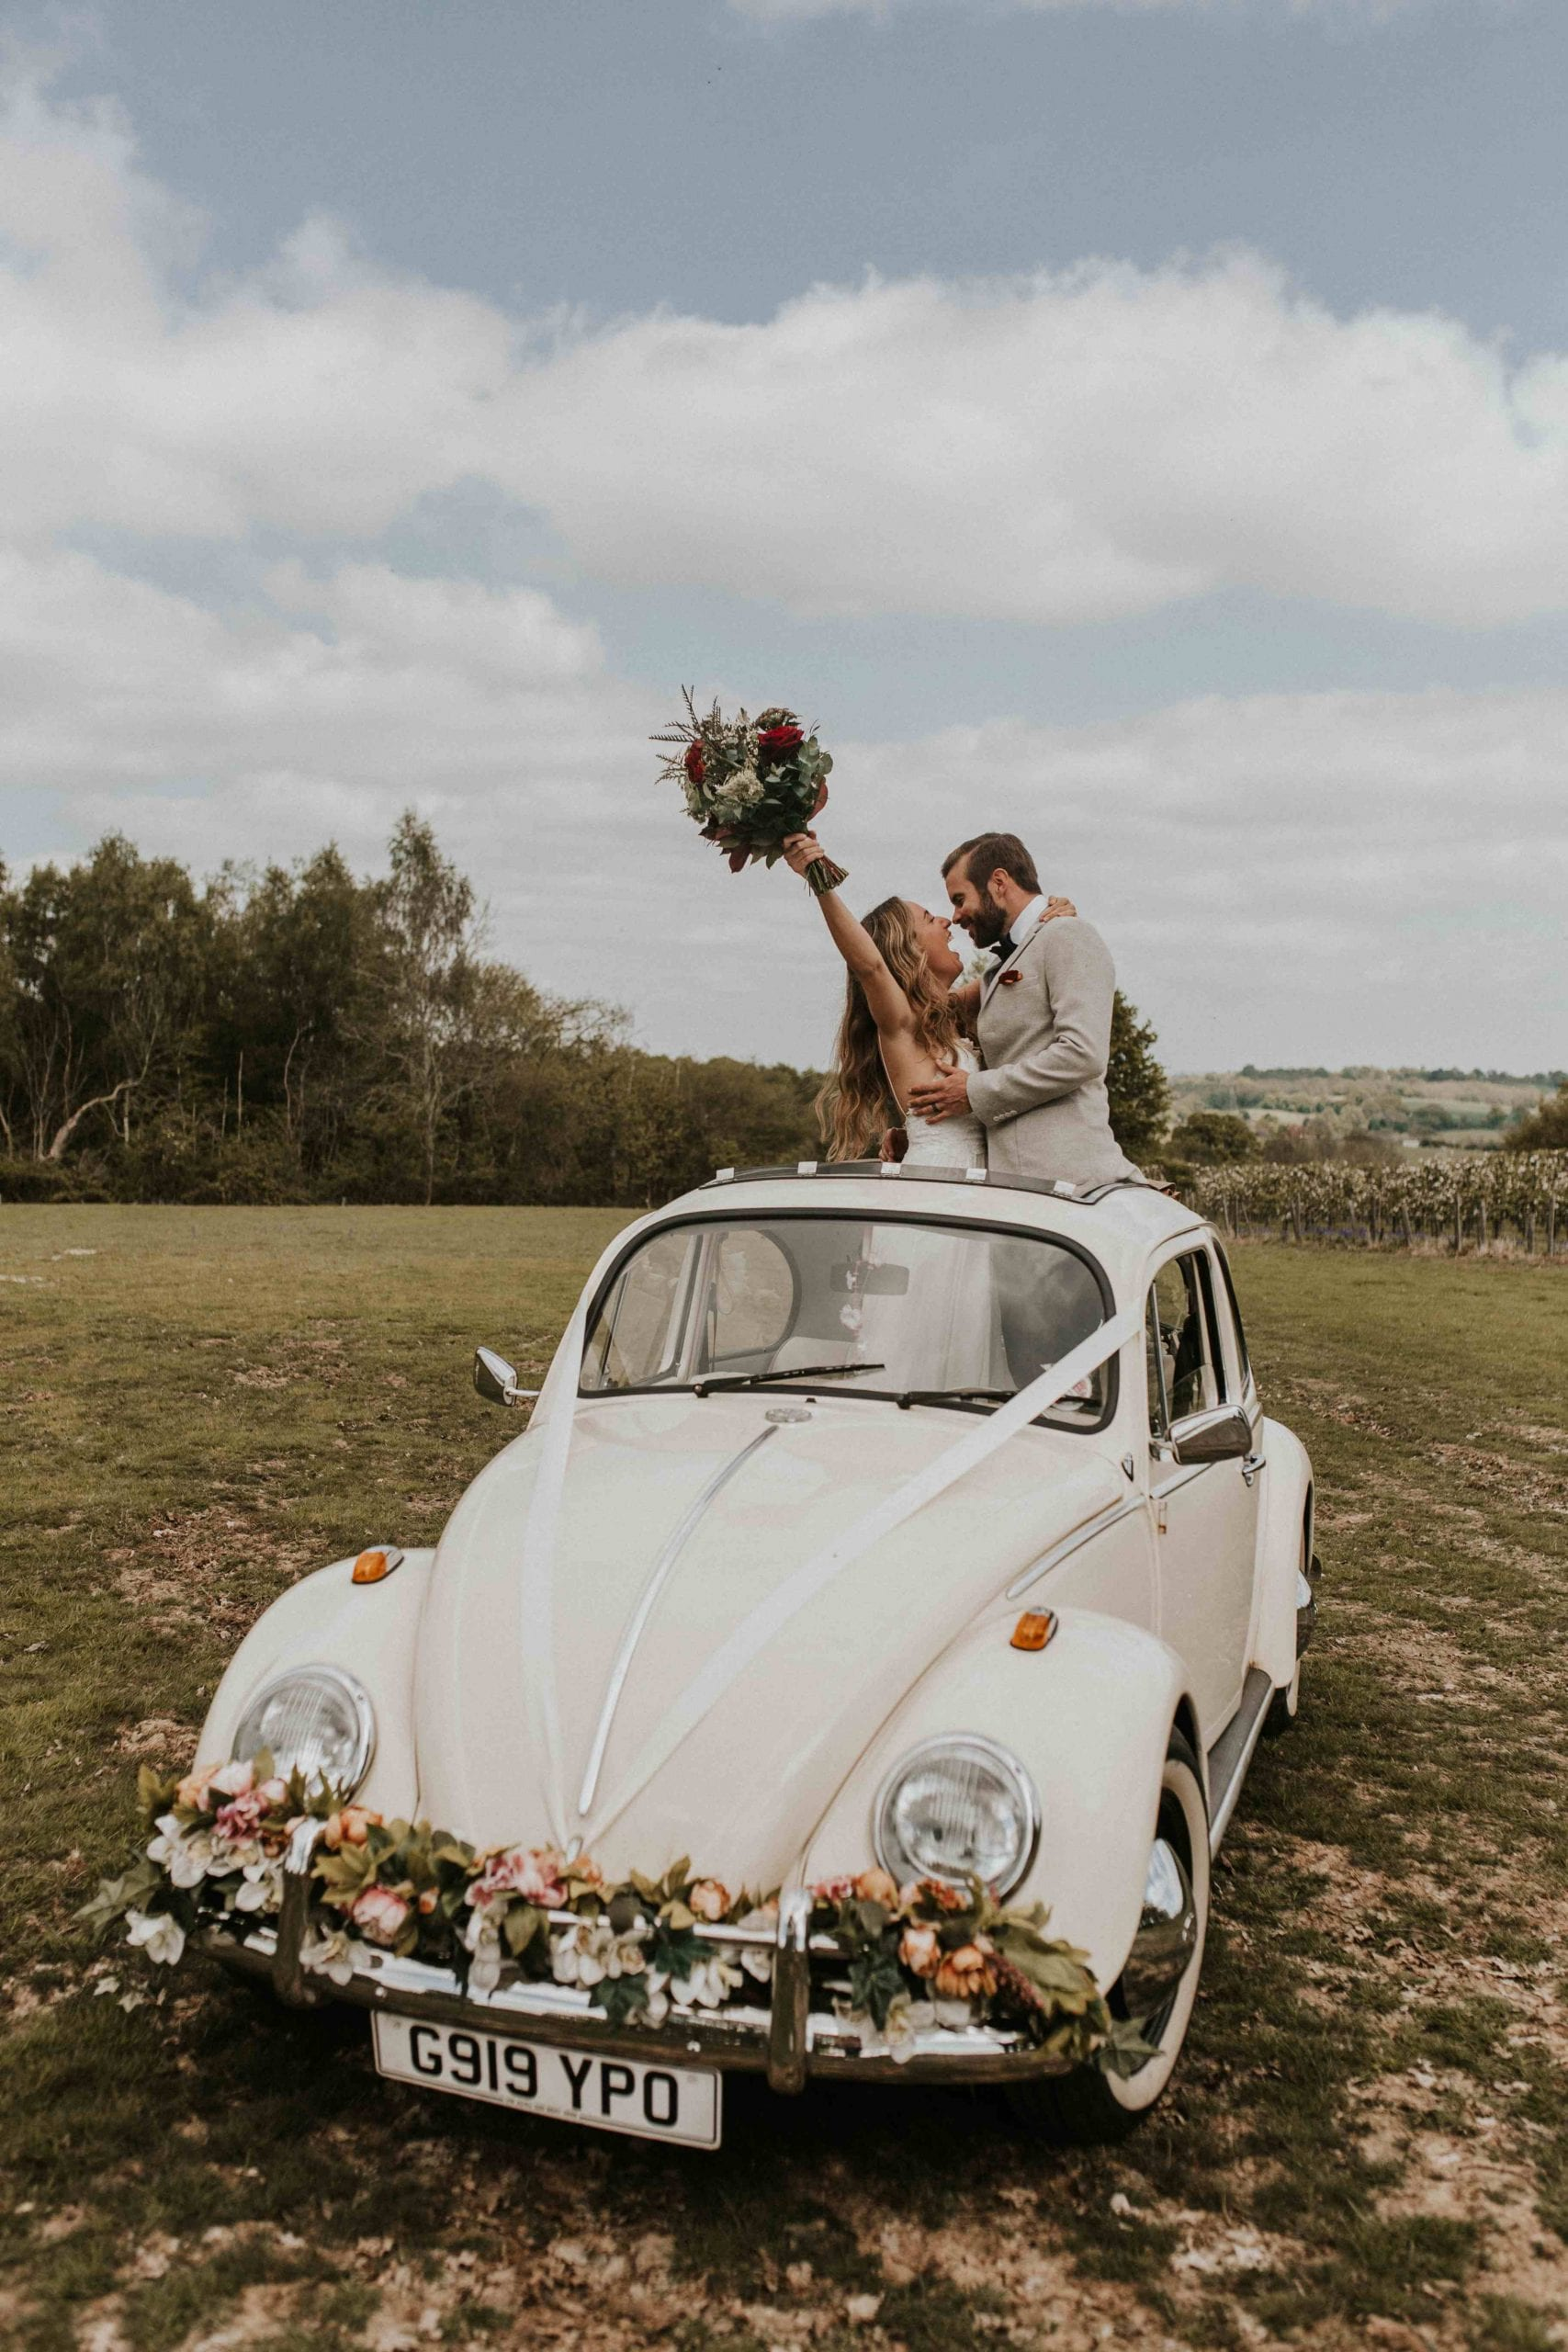 VW Beetle wedding car hire Surrey